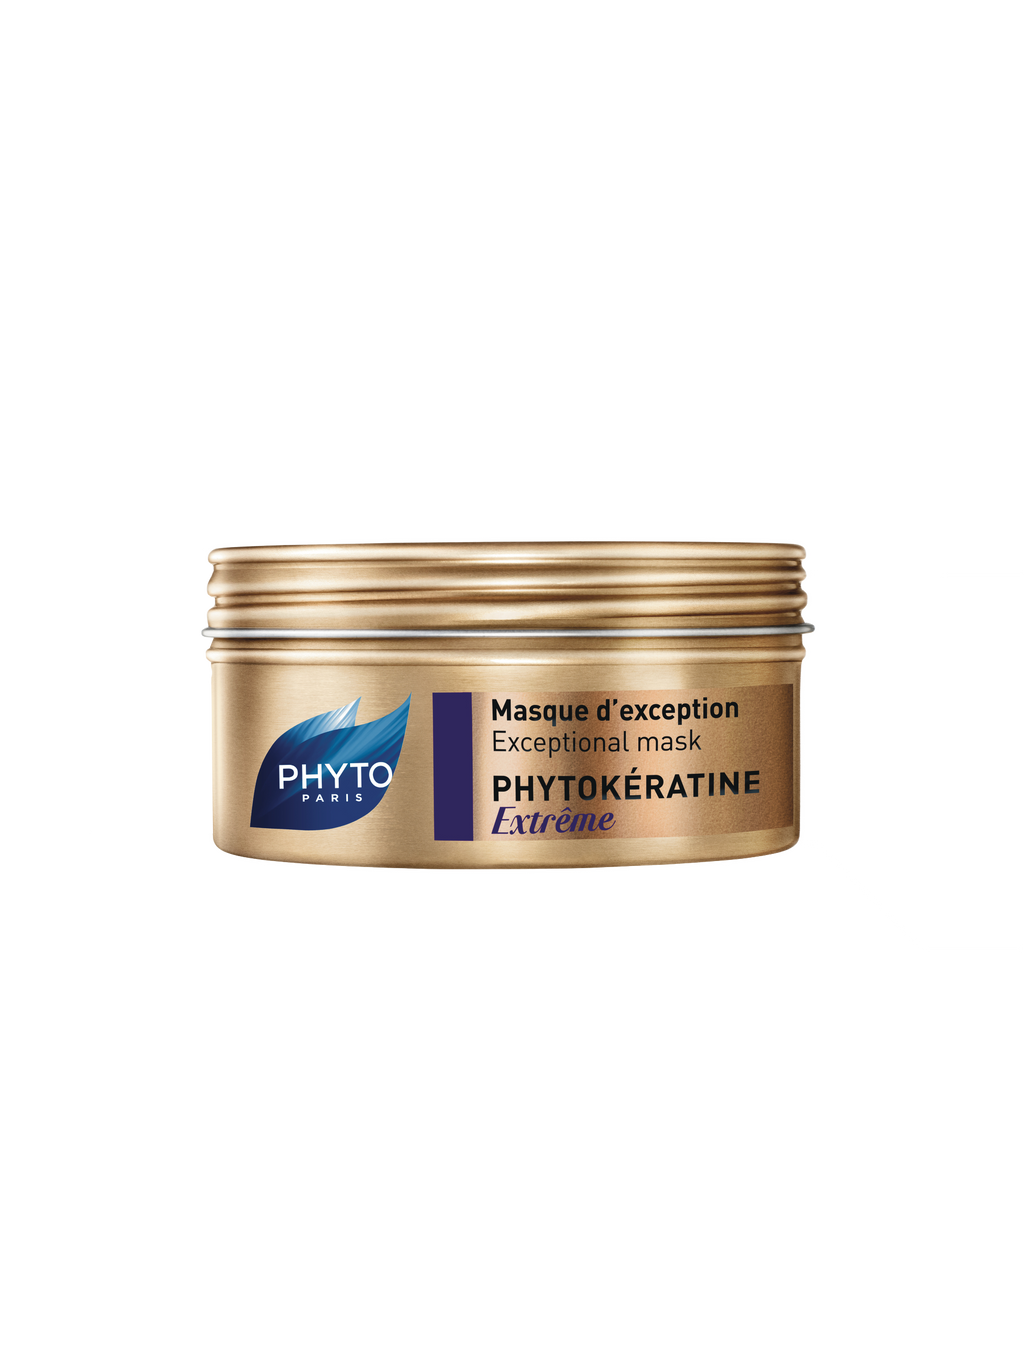 phyto-phytokeratine-extreme-exceptional-mask-for-ultra-dry-hair-mask-cosmetics-online